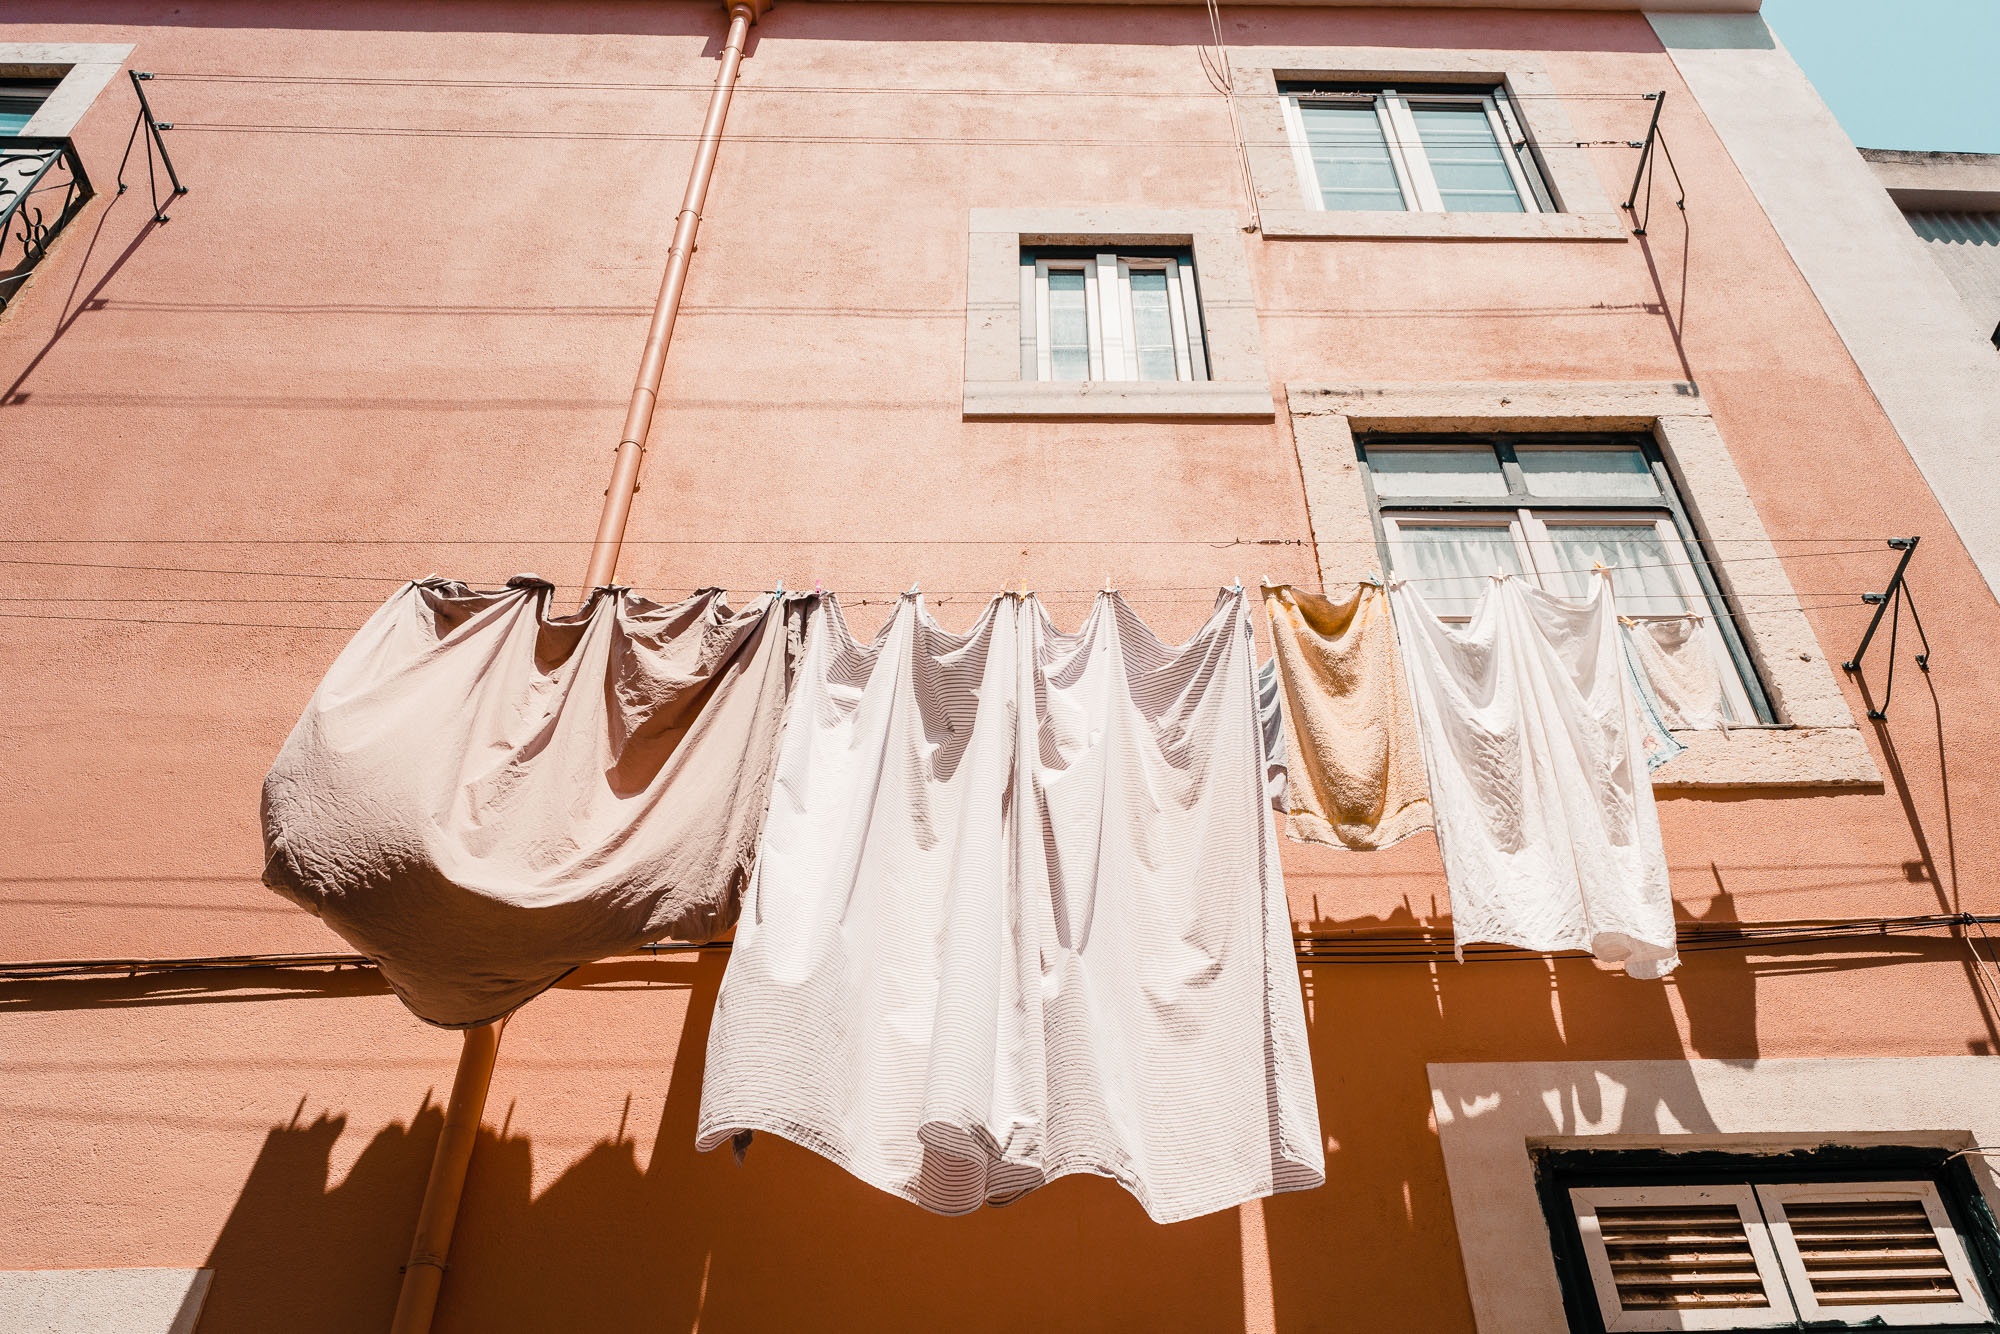 Hanging laundry on a pink building in Lisbon, Portugal | Lisbon Travel Guide via Find Us Lost